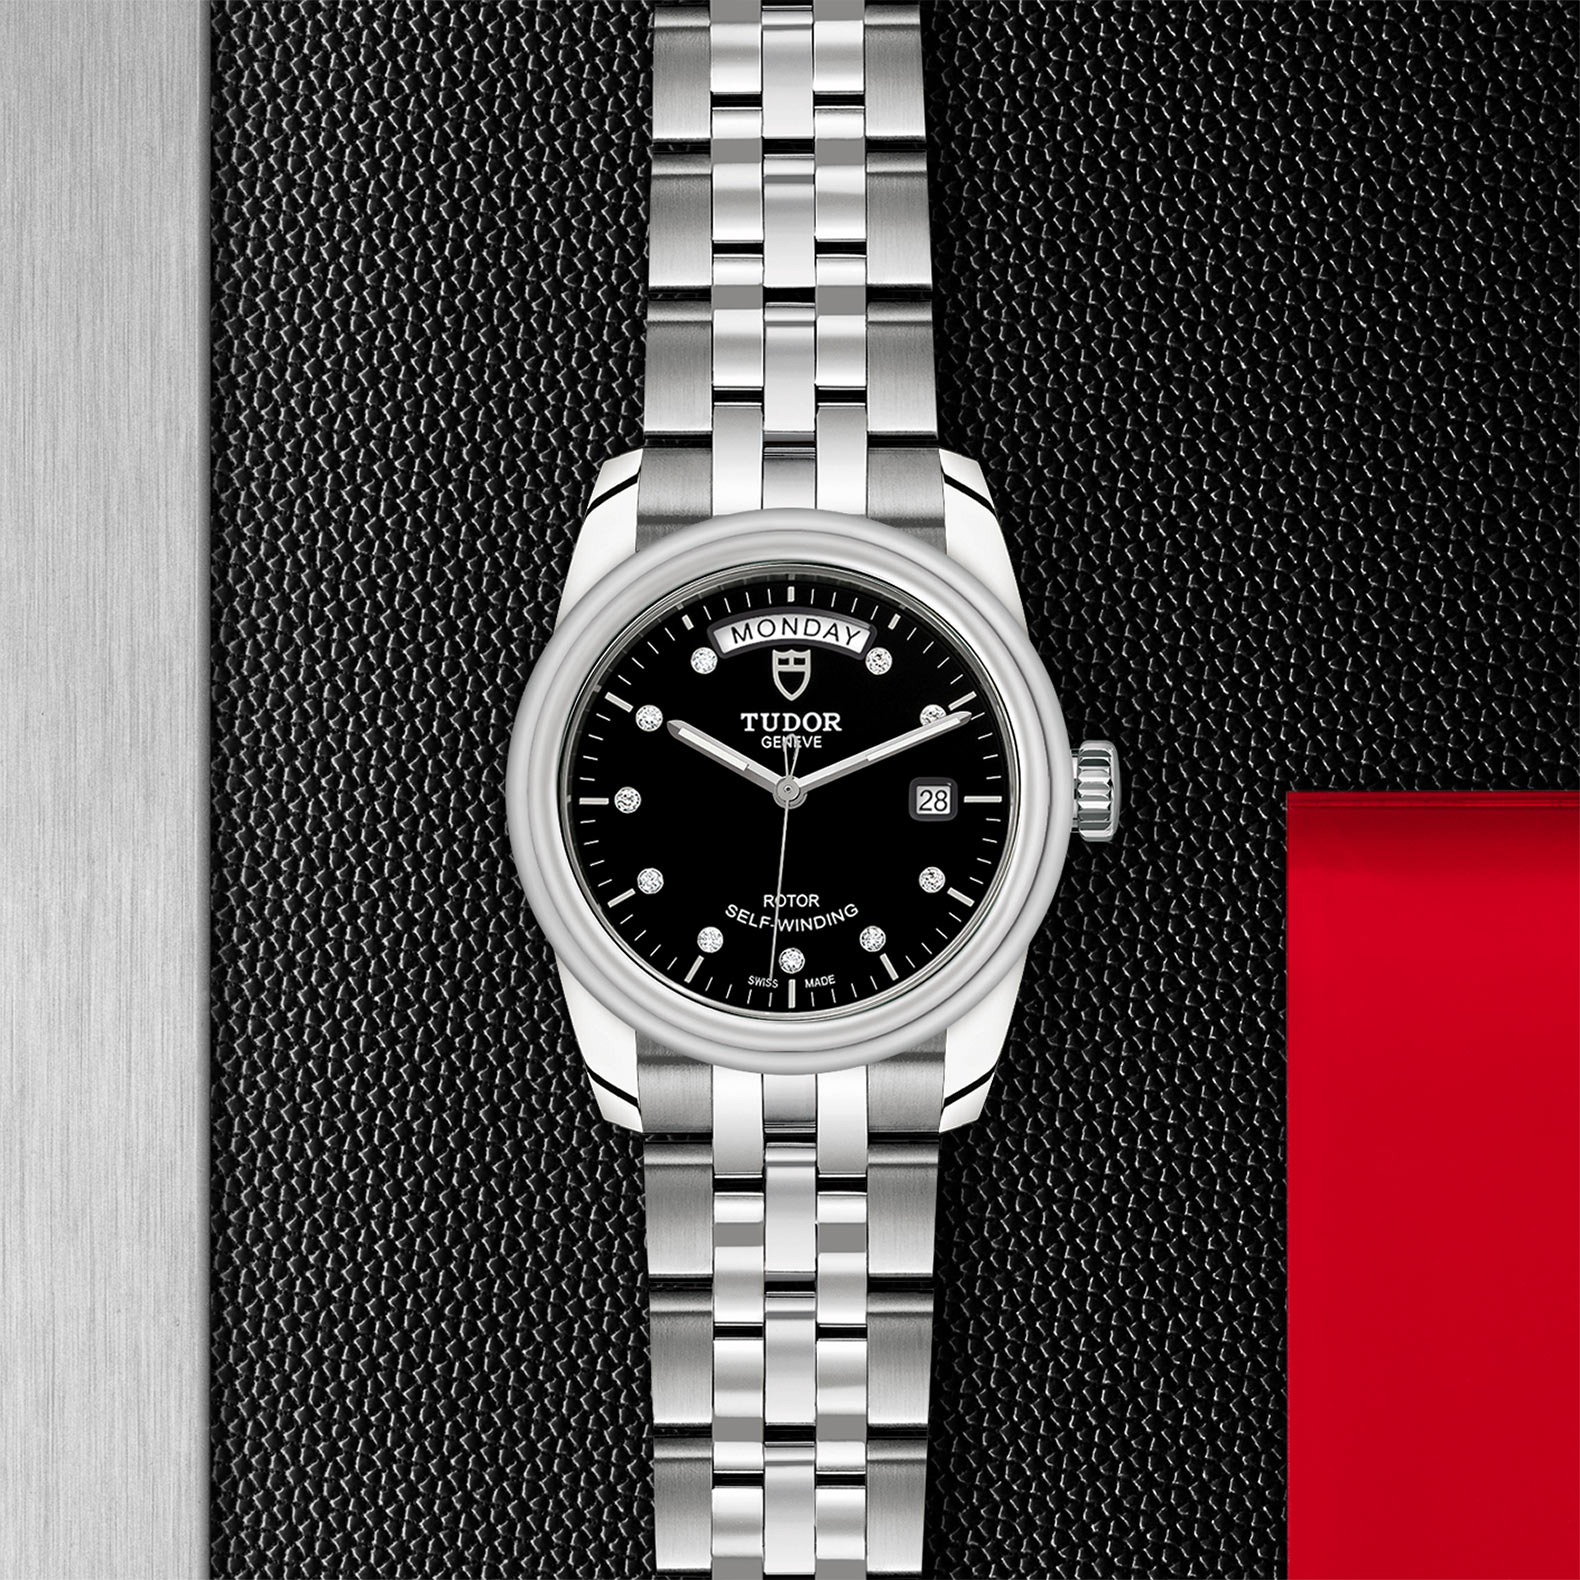 TUDOR Glamour Date+Day - M56000-0008